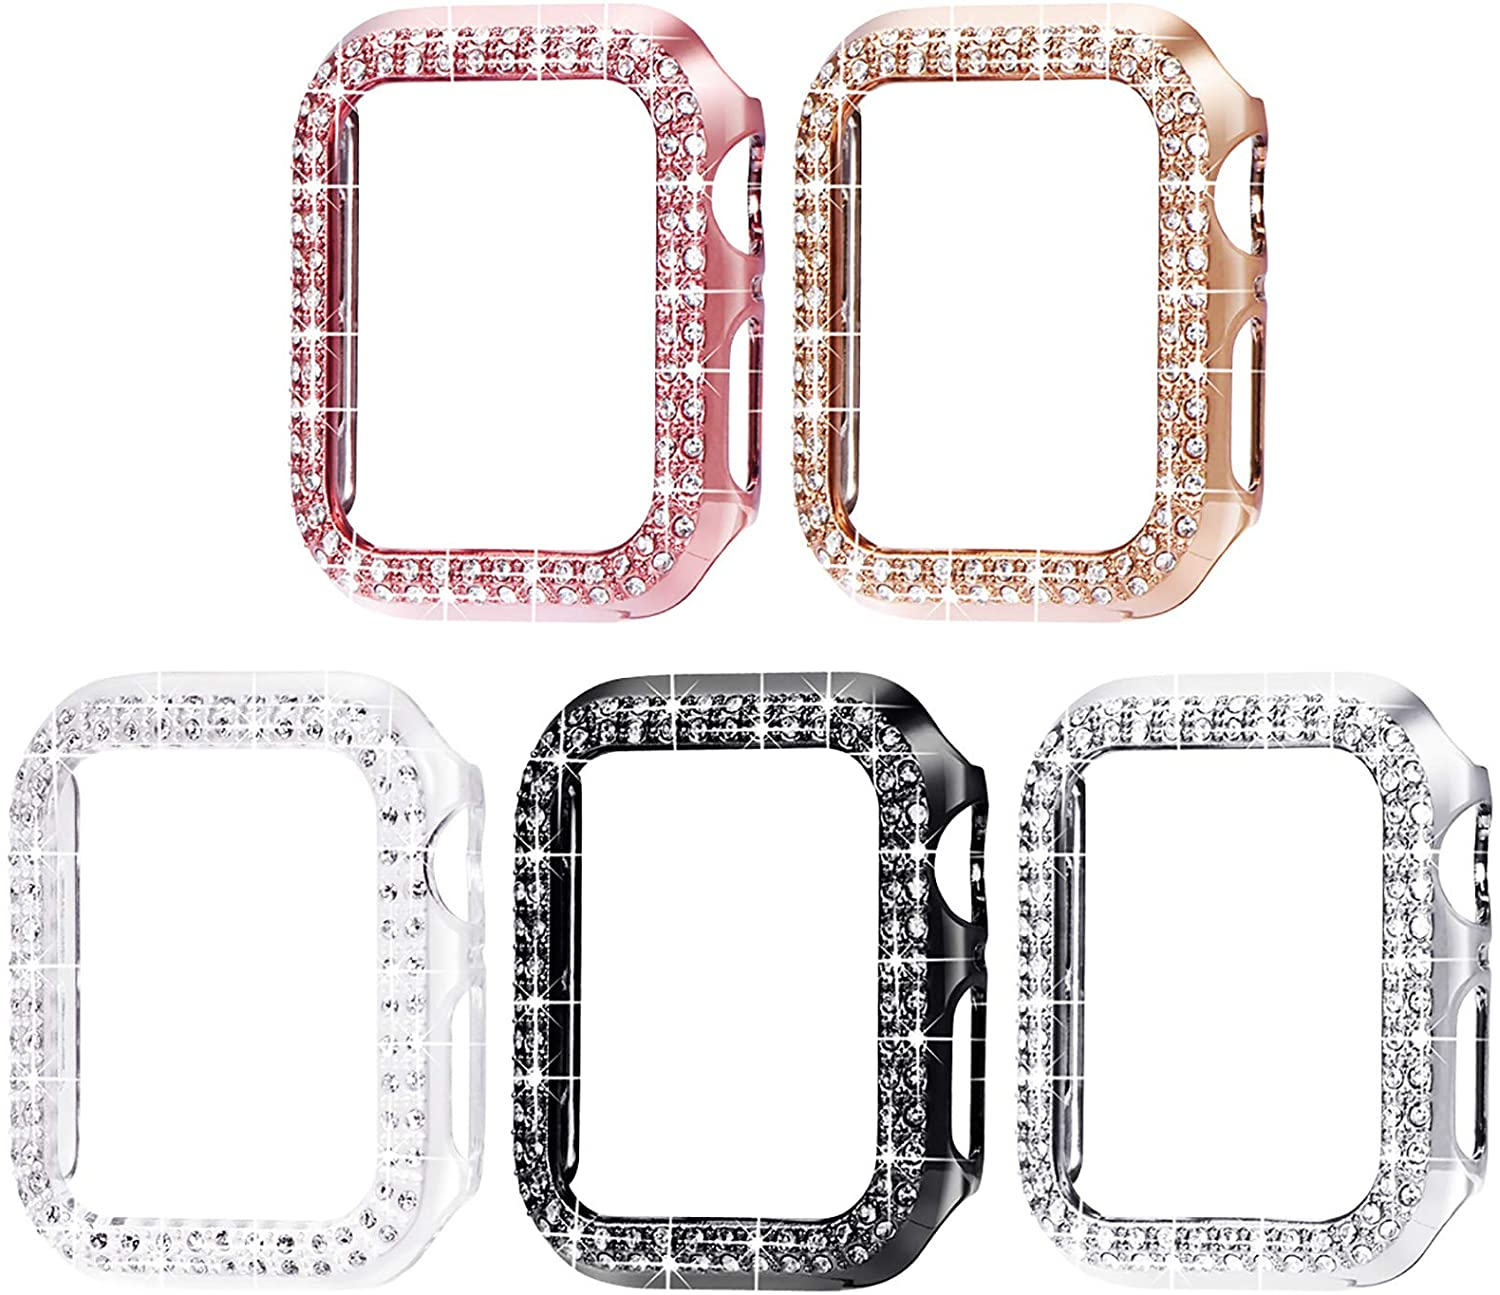 Surace 44mm Case Compatible with Apple Watch Case, Bling Frame Protective Case Screen Protector Replacement for Apple Watch Series 6/5/4 44mm (5 Packs, Rose Gold/Pink Gold/Black/Silver/Clear-44mm